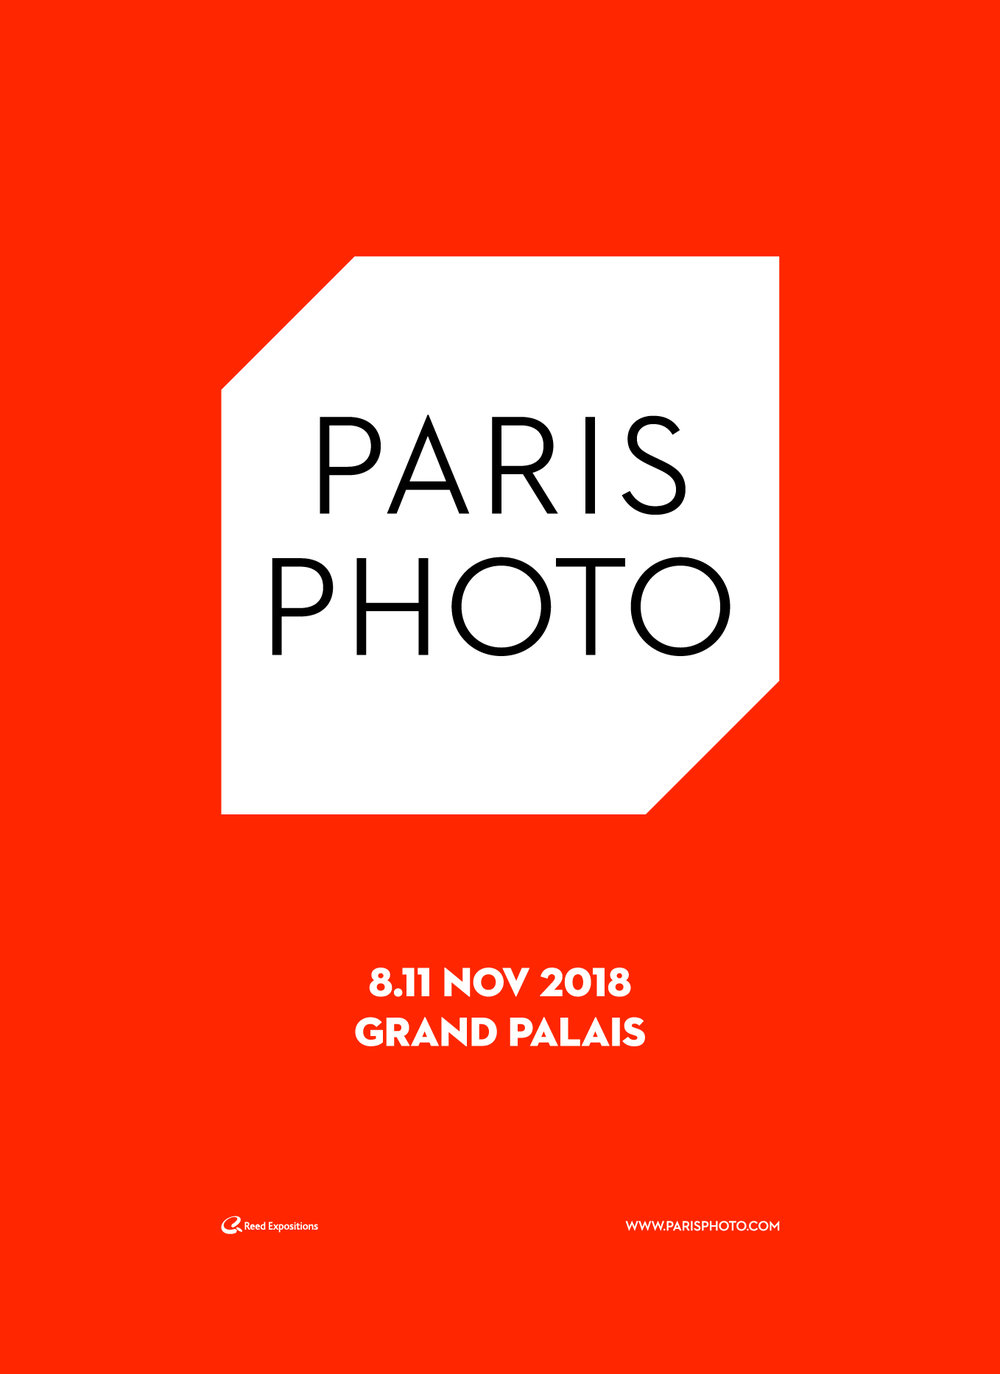 https://www.parisphoto.com/en/Home/